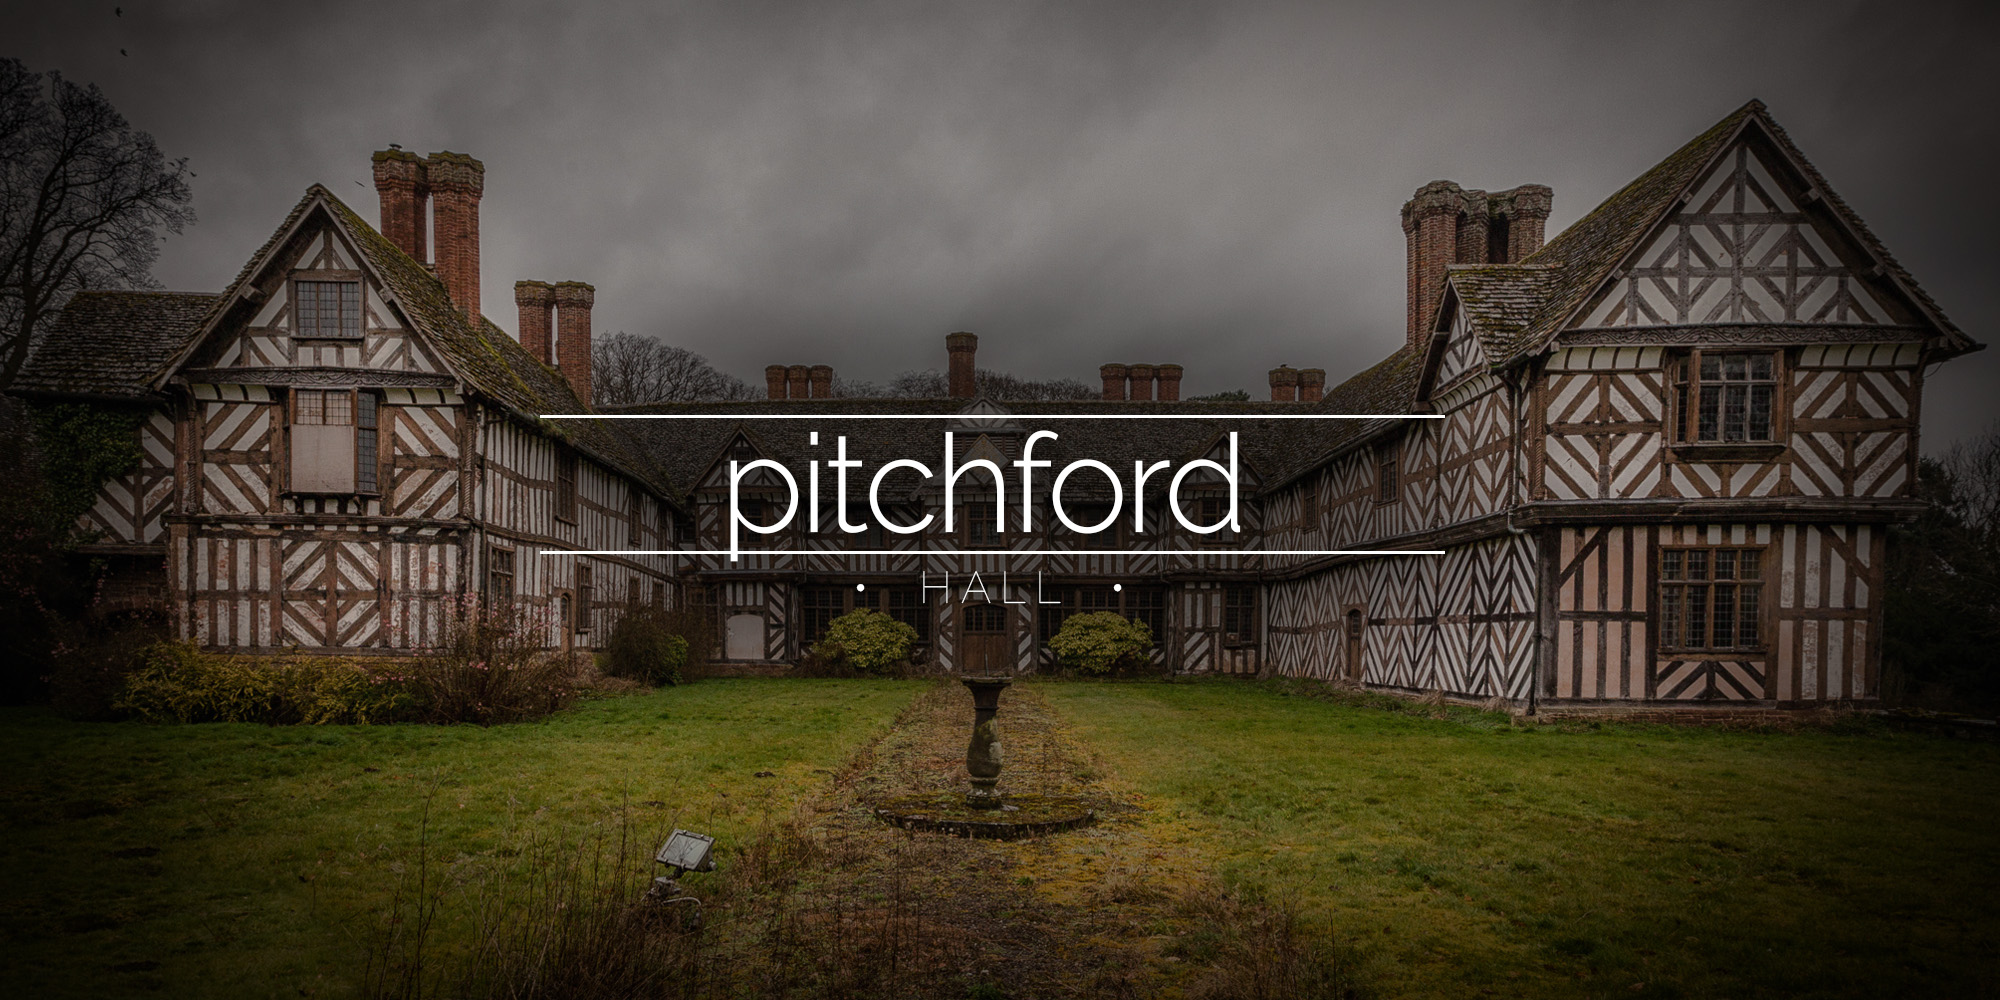 Pitchford Hall, England